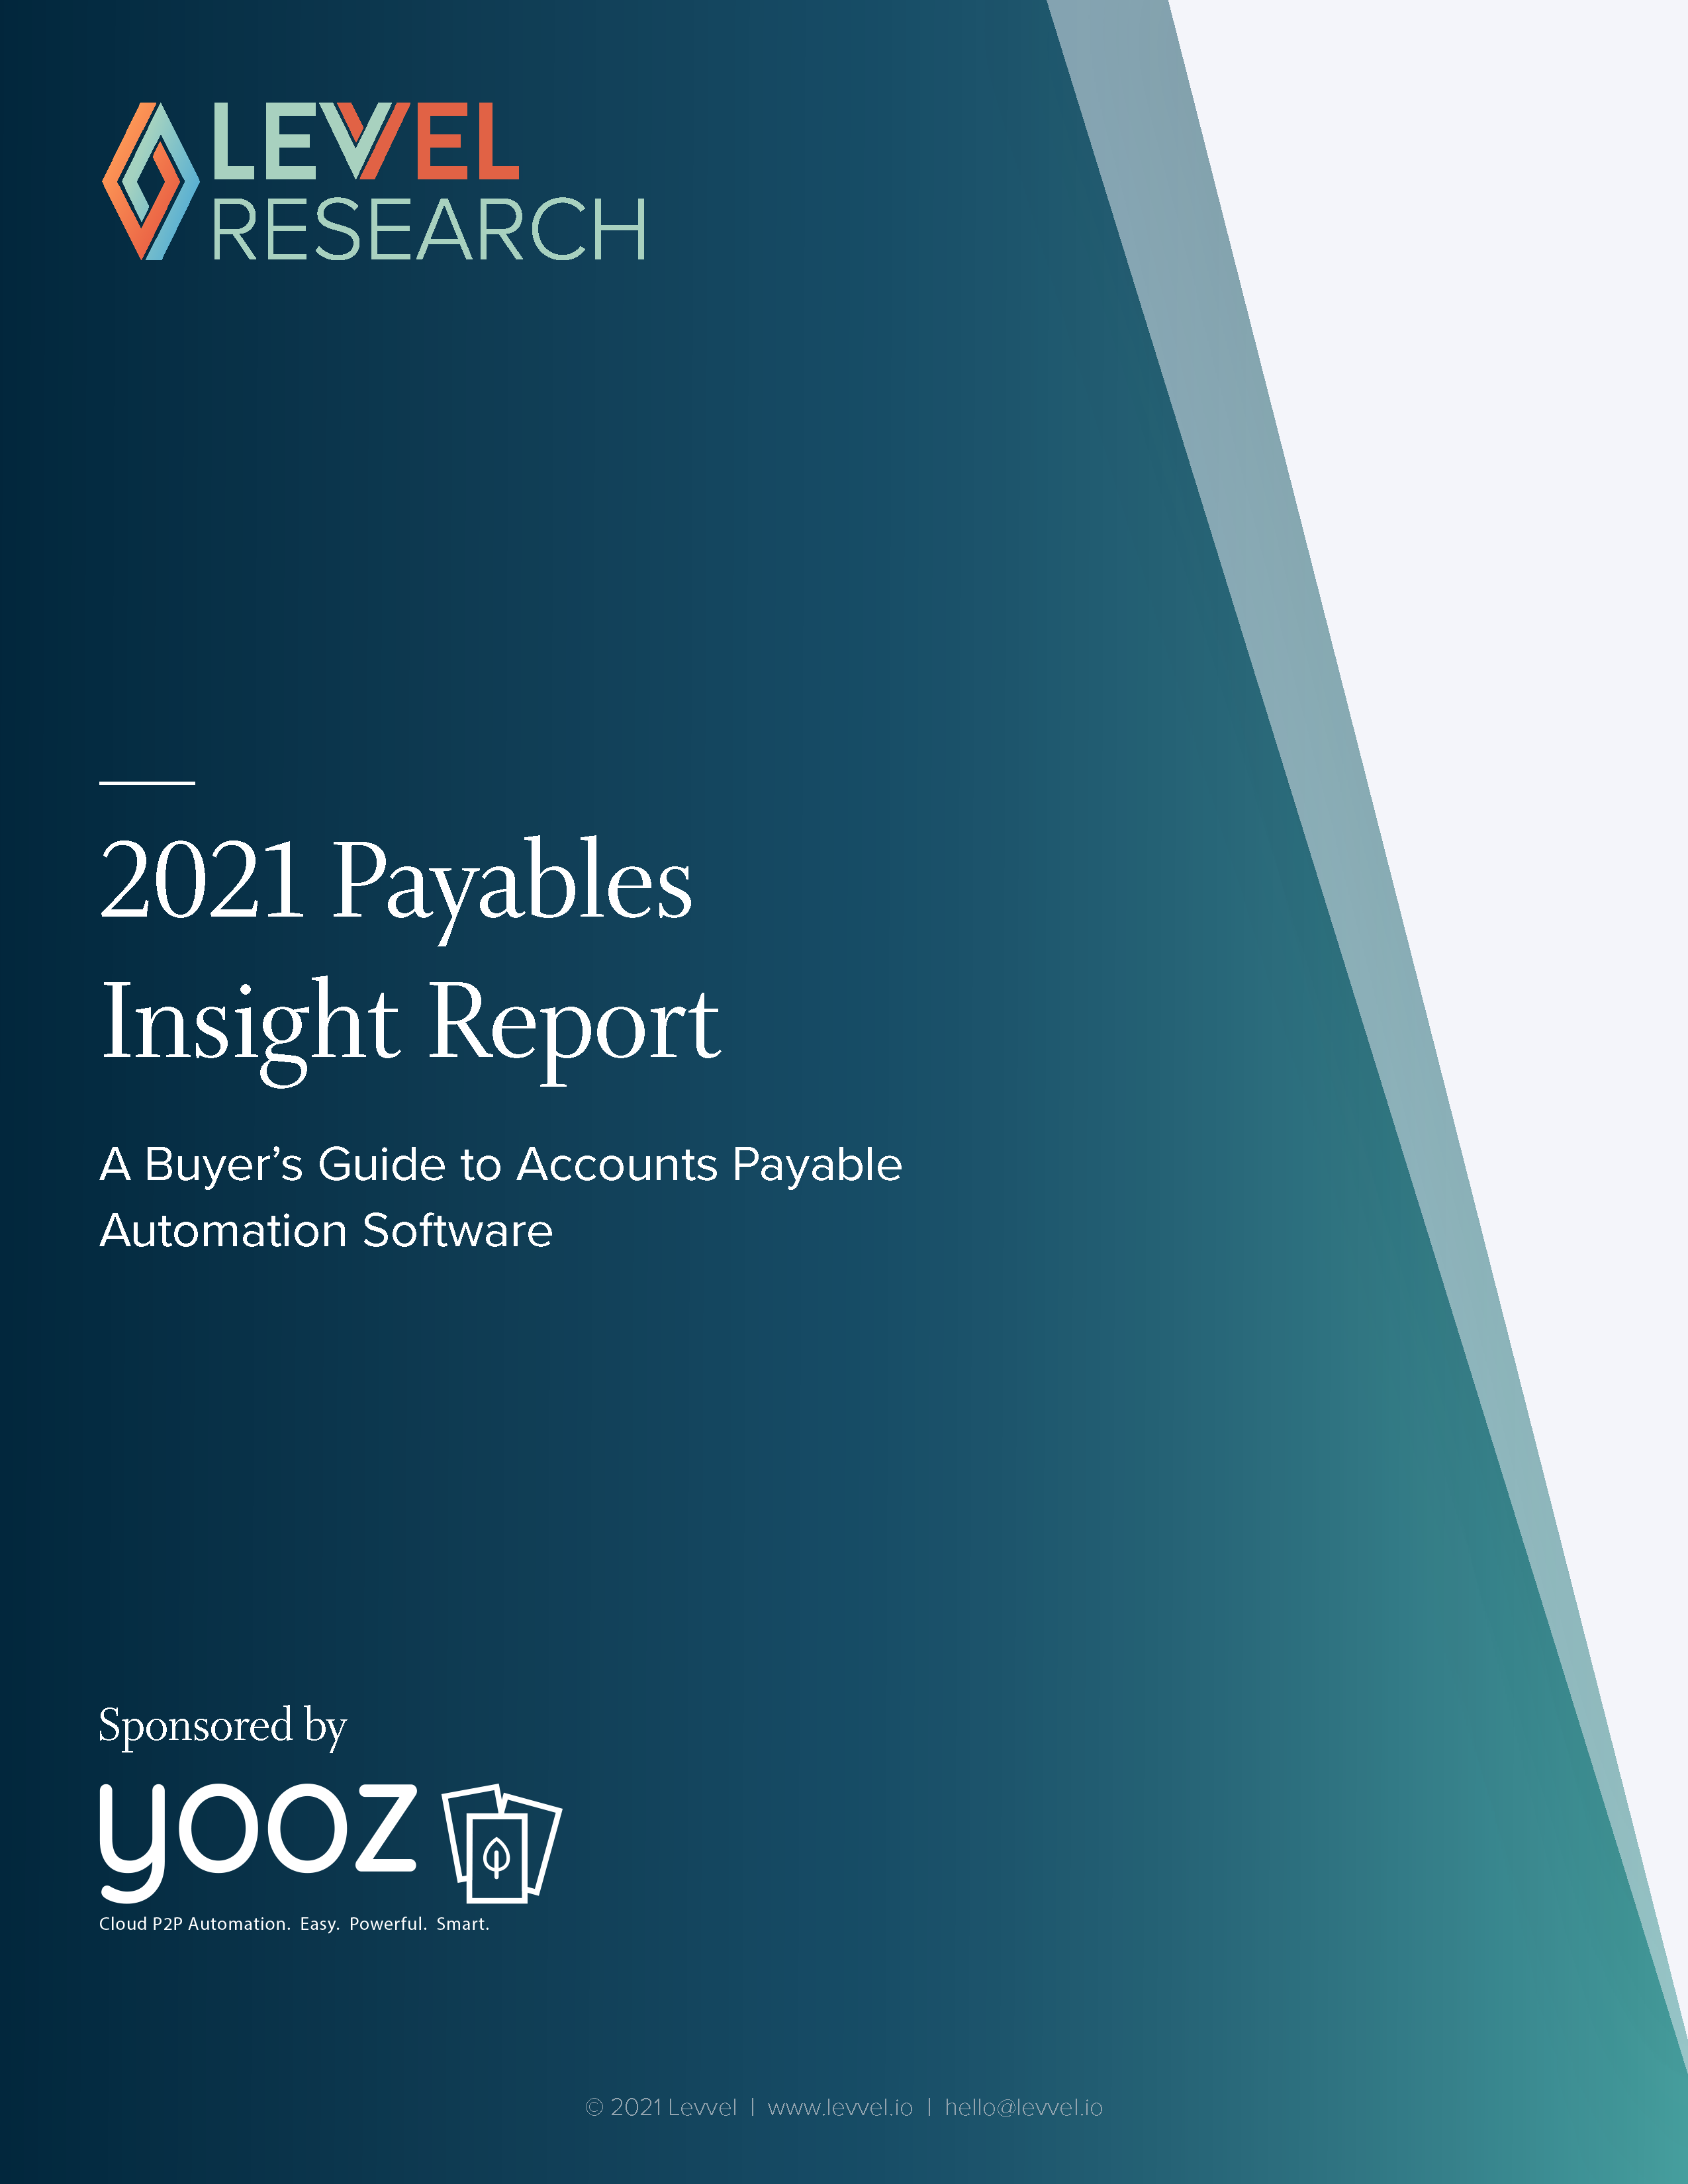 Yooz - Whitepaper - 2021 Levvel Payables Insight Report_Page_01